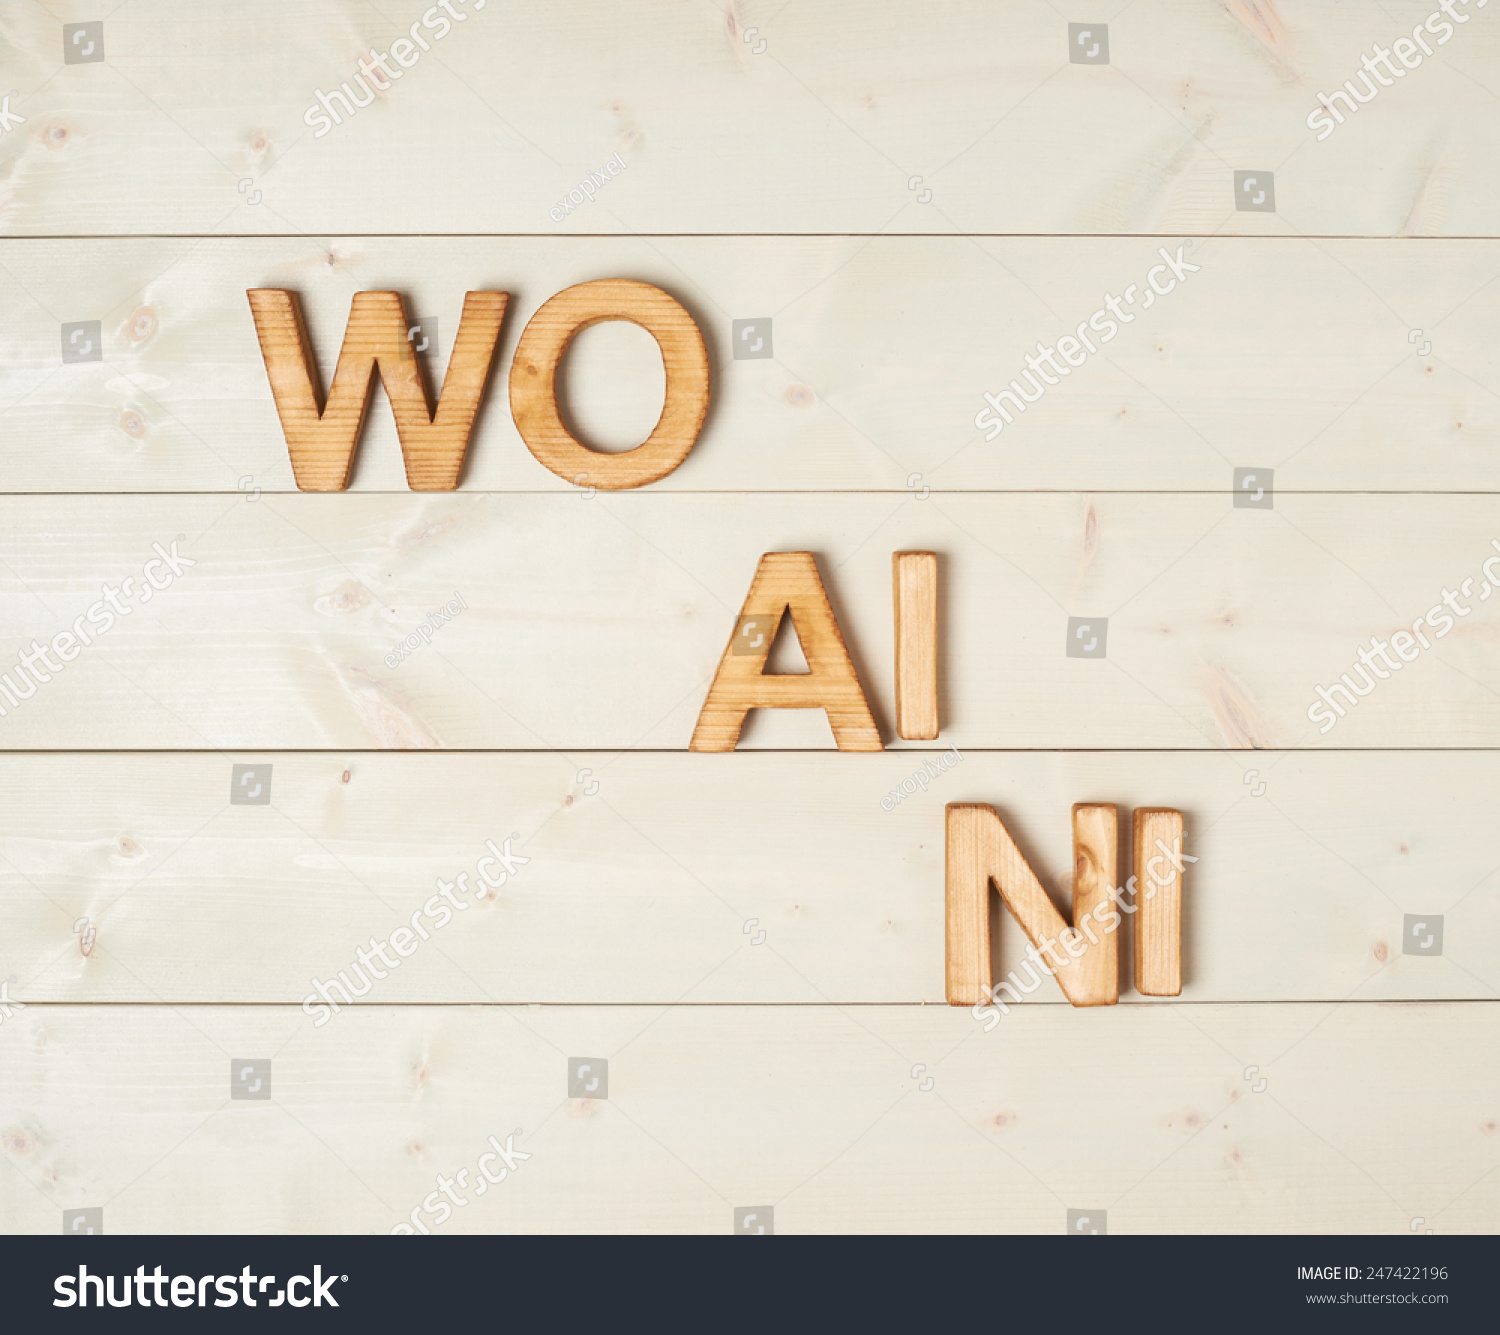 Wo ai ni meaning love you stock photo 247422196 shutterstock wo ai ni meaning i love you in chinese written with the block letters over the biocorpaavc